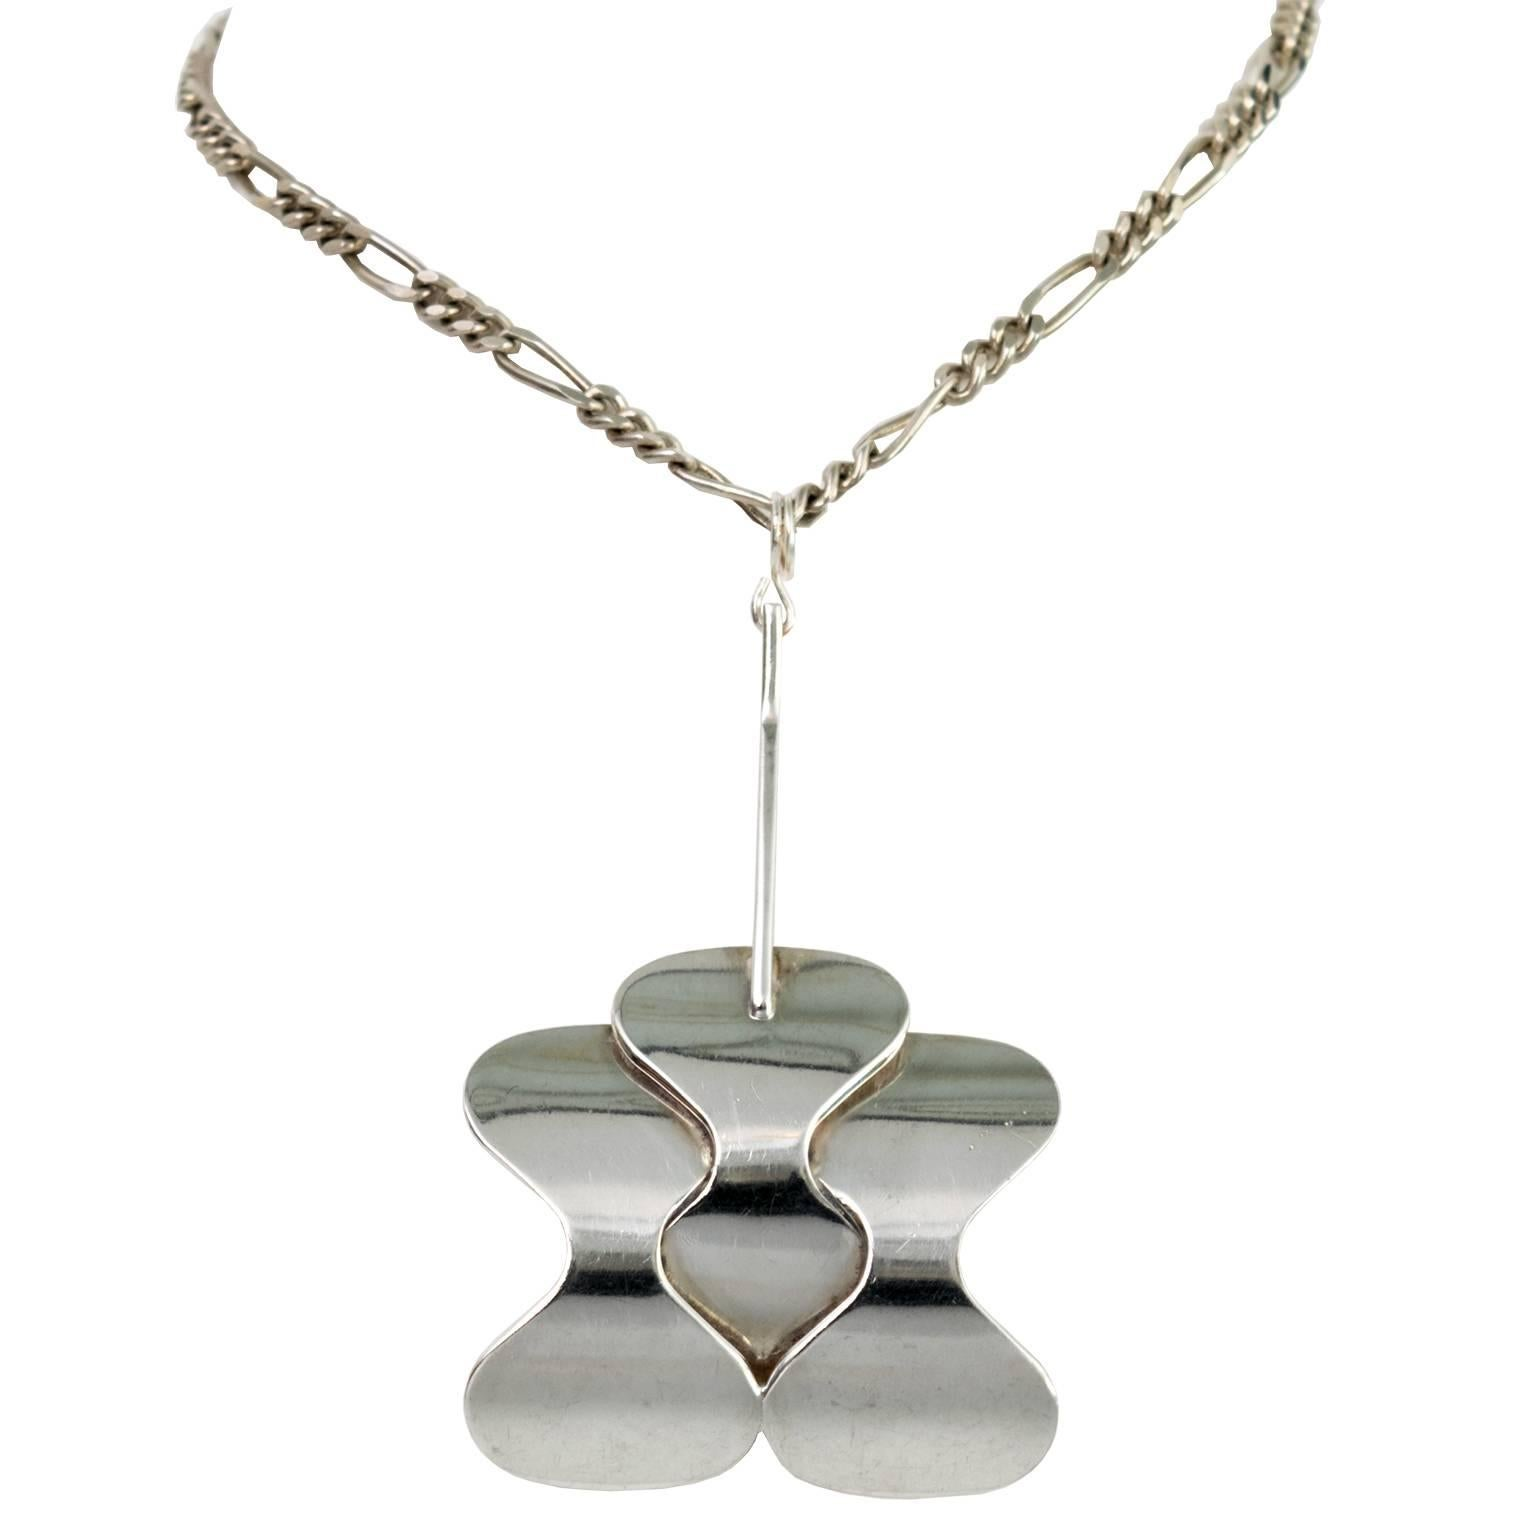 Silver Scandinavian Modern Pendant and Chain from Hopeajaloste OY